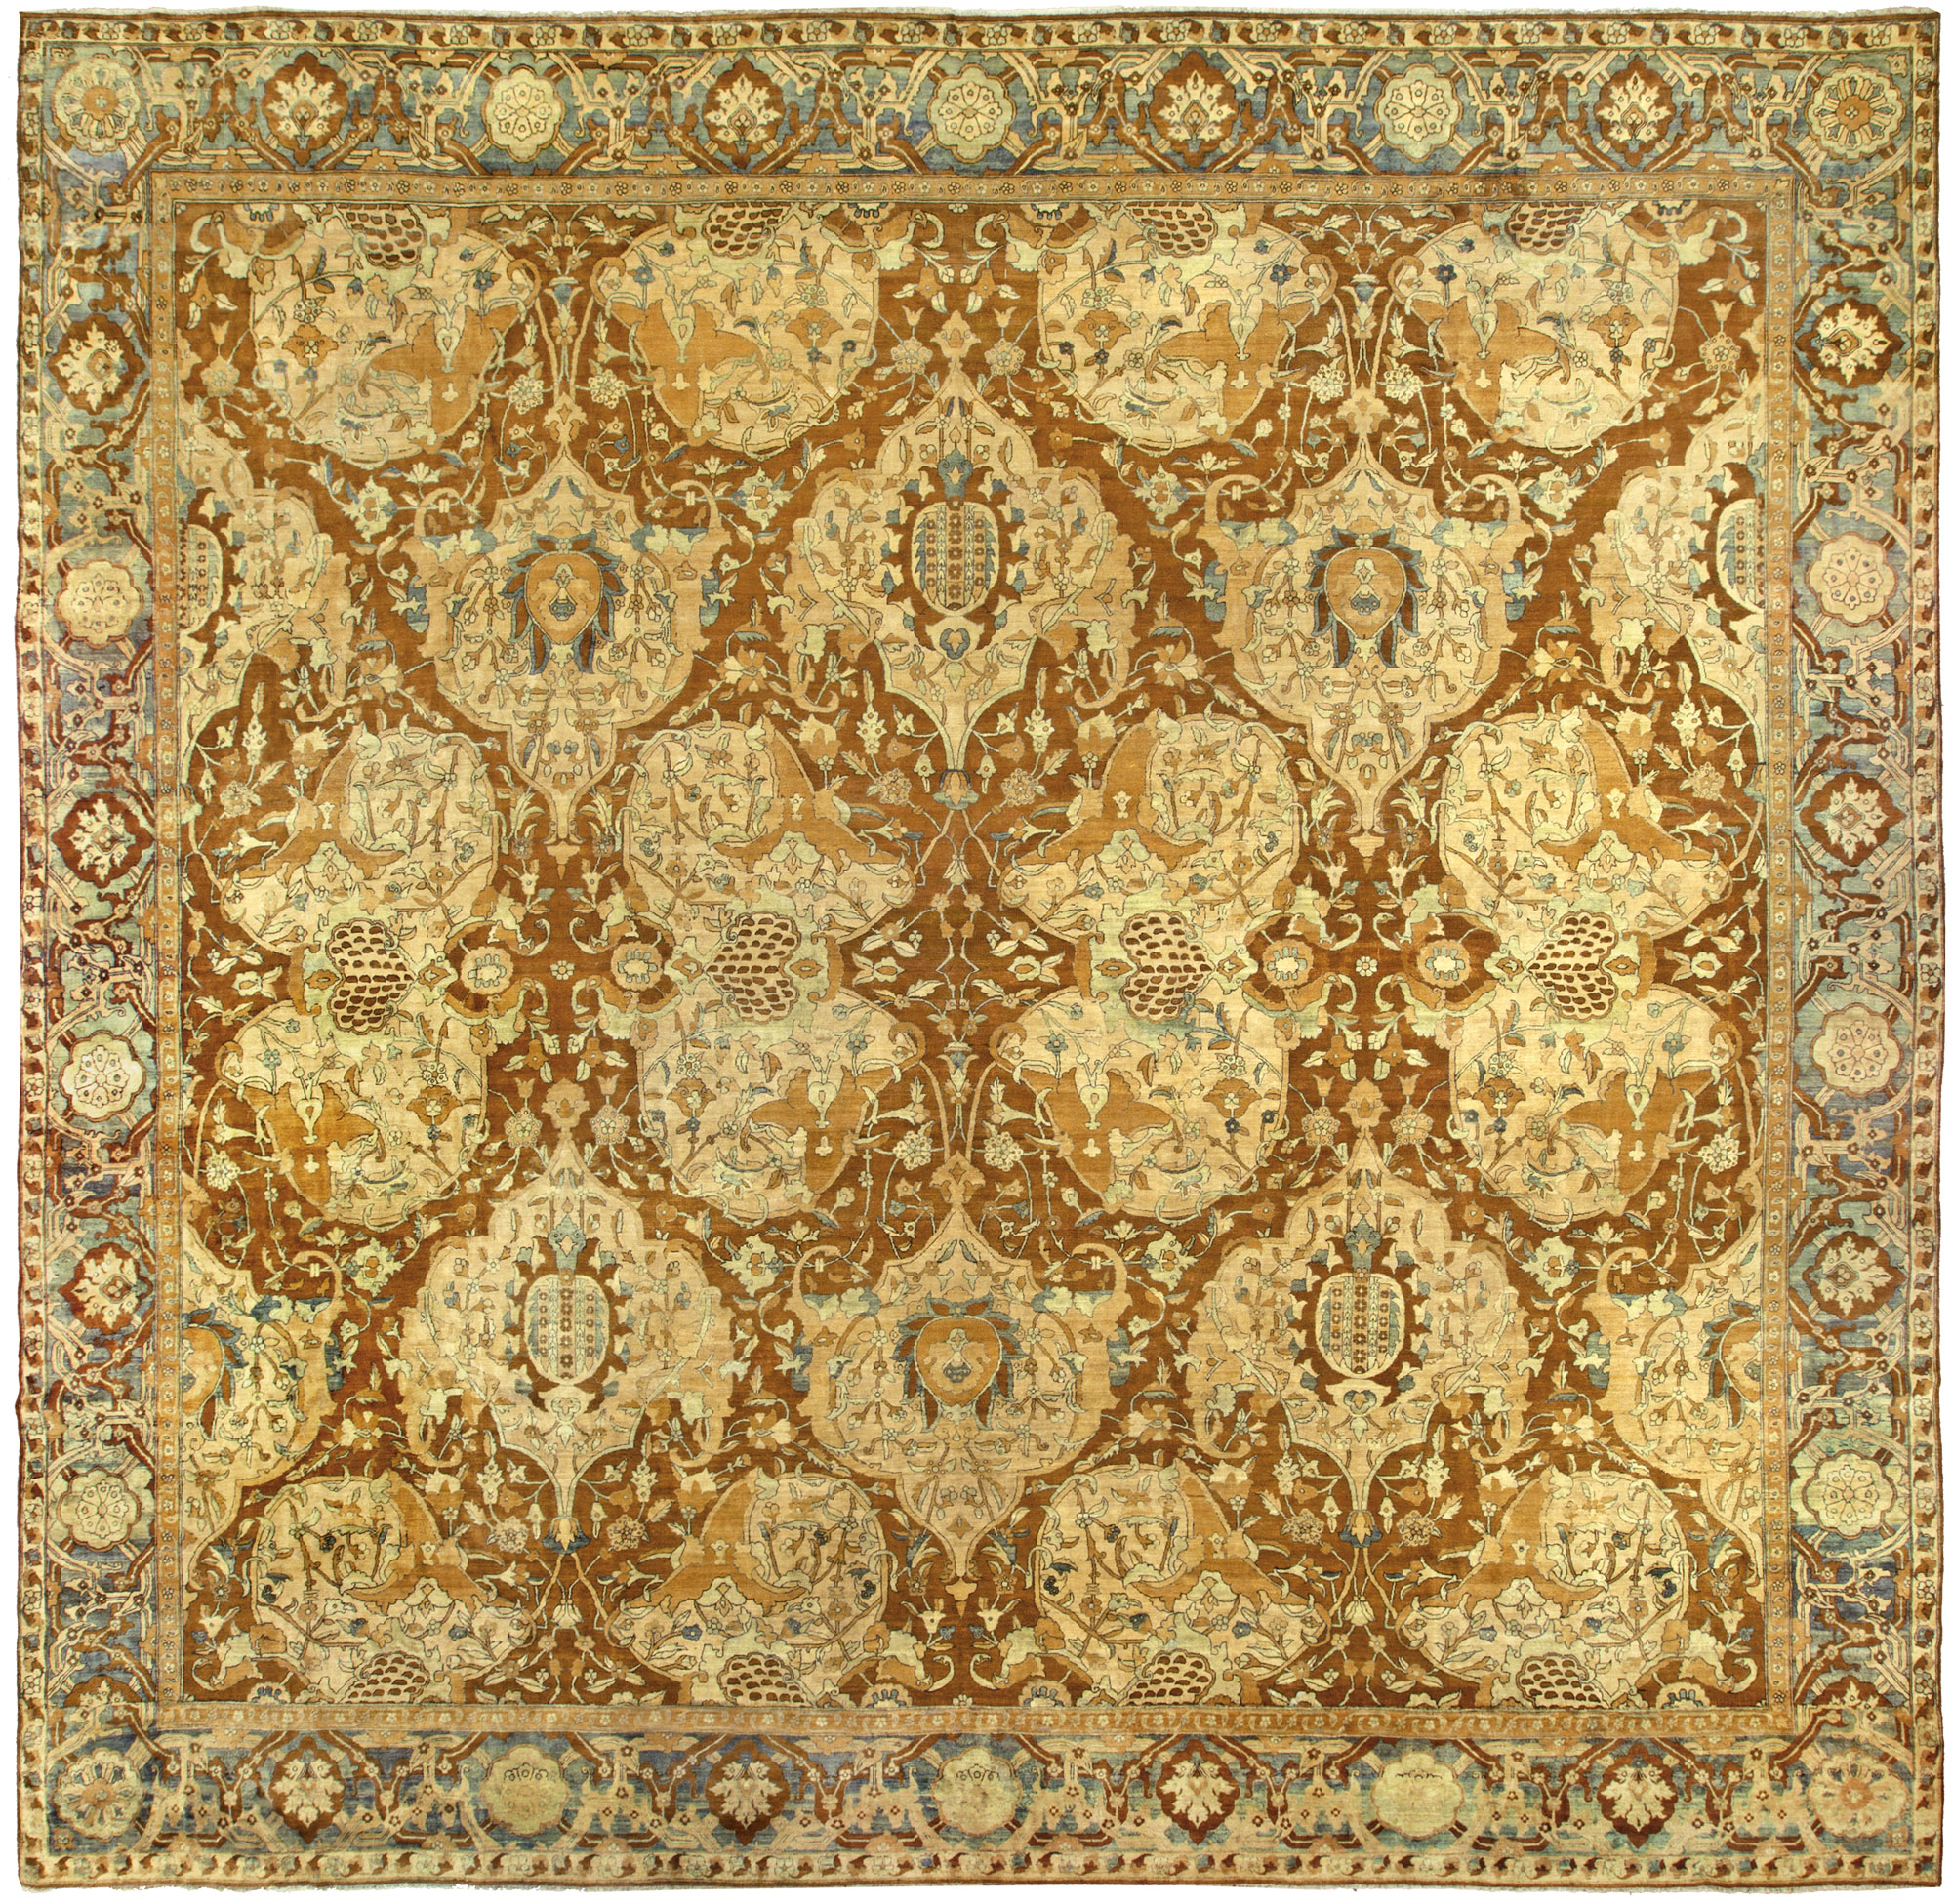 North Indian Rugs Amp Carpets For Sale Antique Oriental